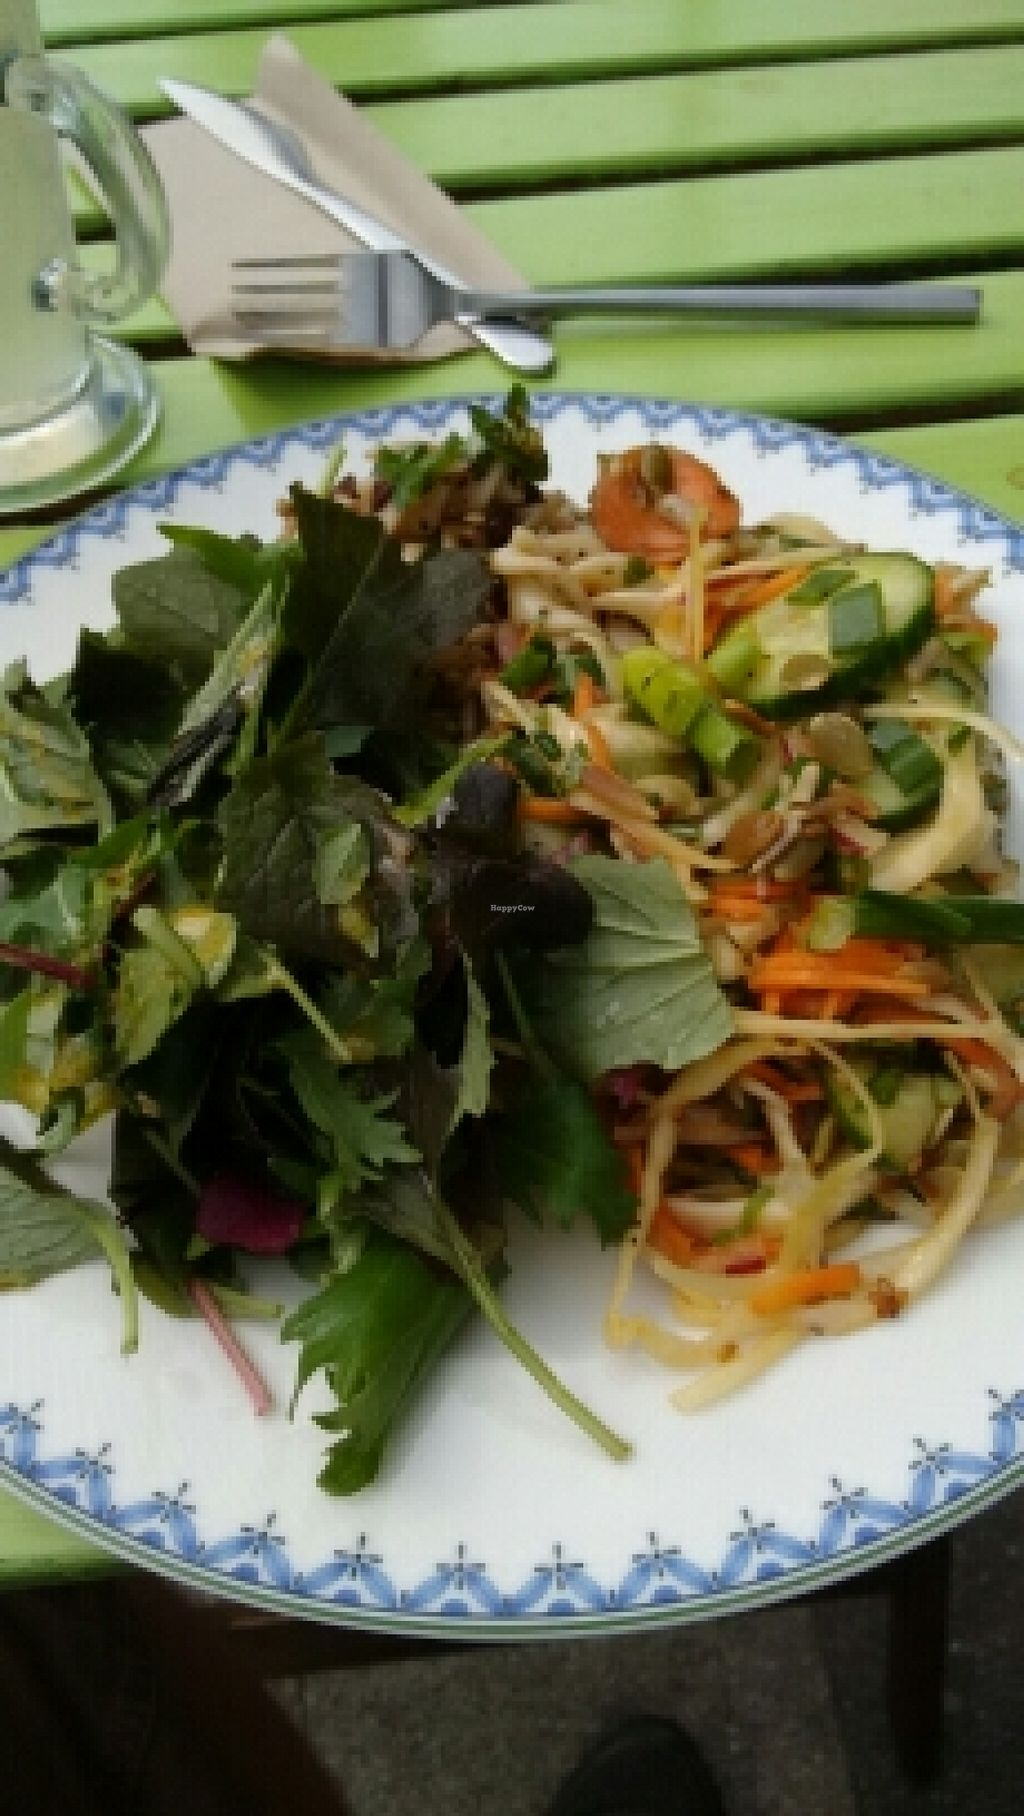 """Photo of The Project Cafe  by <a href=""""/members/profile/craigmc"""">craigmc</a> <br/>late lunch, two salads and greens. fab <br/> May 8, 2016  - <a href='/contact/abuse/image/47424/148050'>Report</a>"""